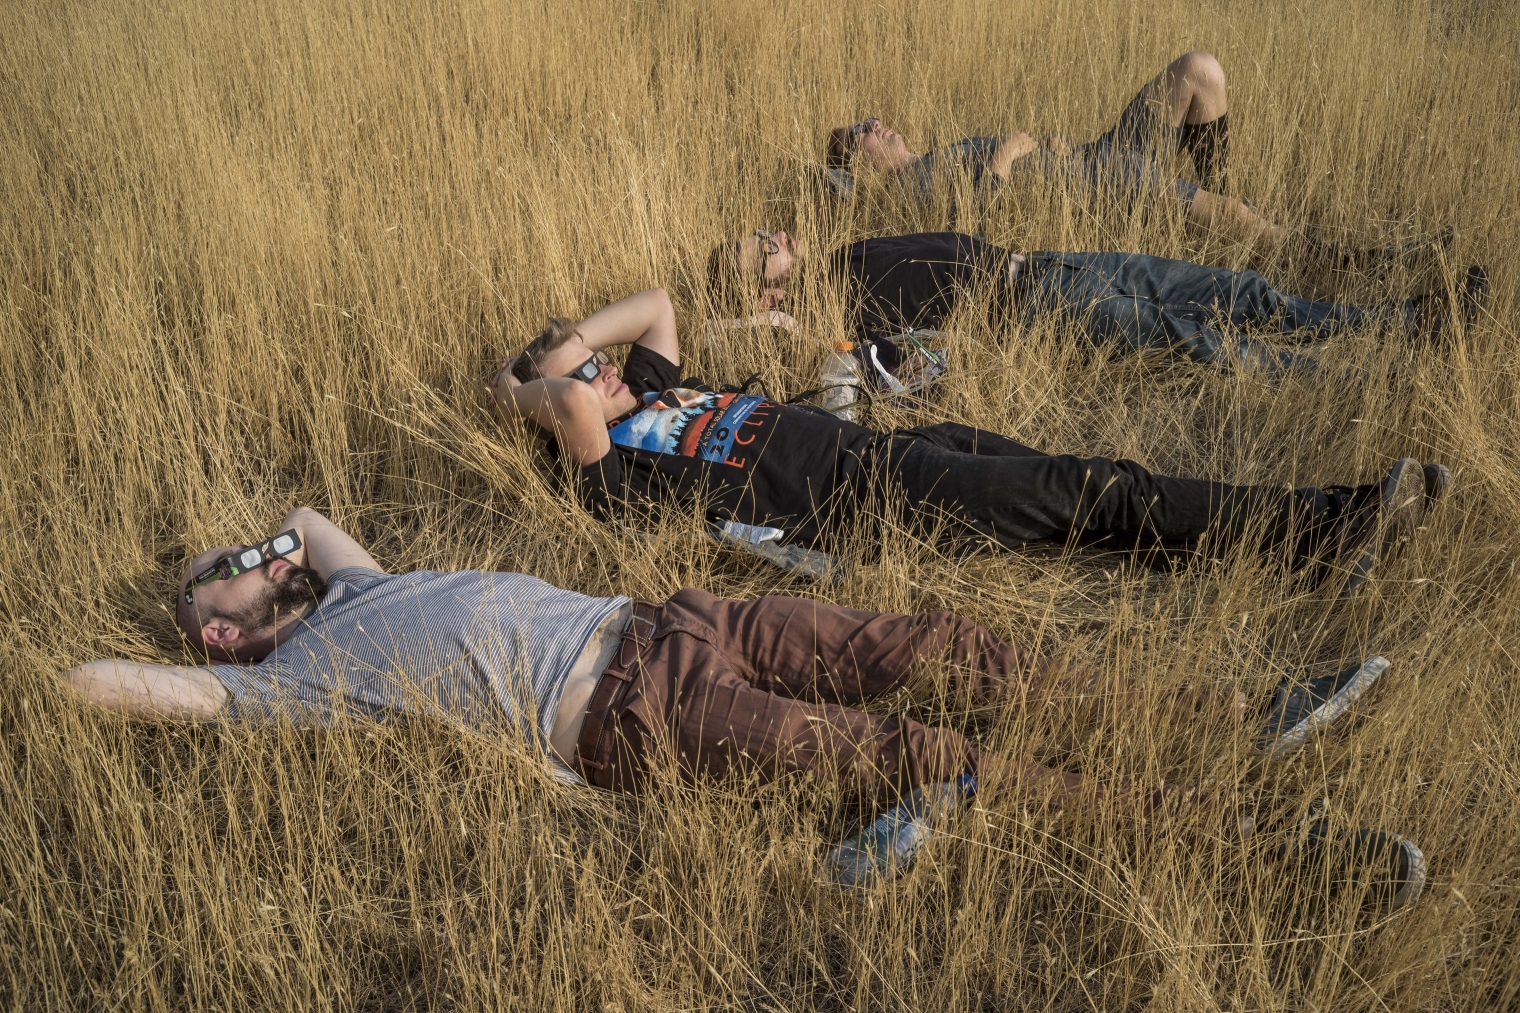 Four men relax before the time the moon will have full coverage over the sun in a field overlooking this small town which is in the path of totality in Madras, Ore., on Aug. 21, 2017.